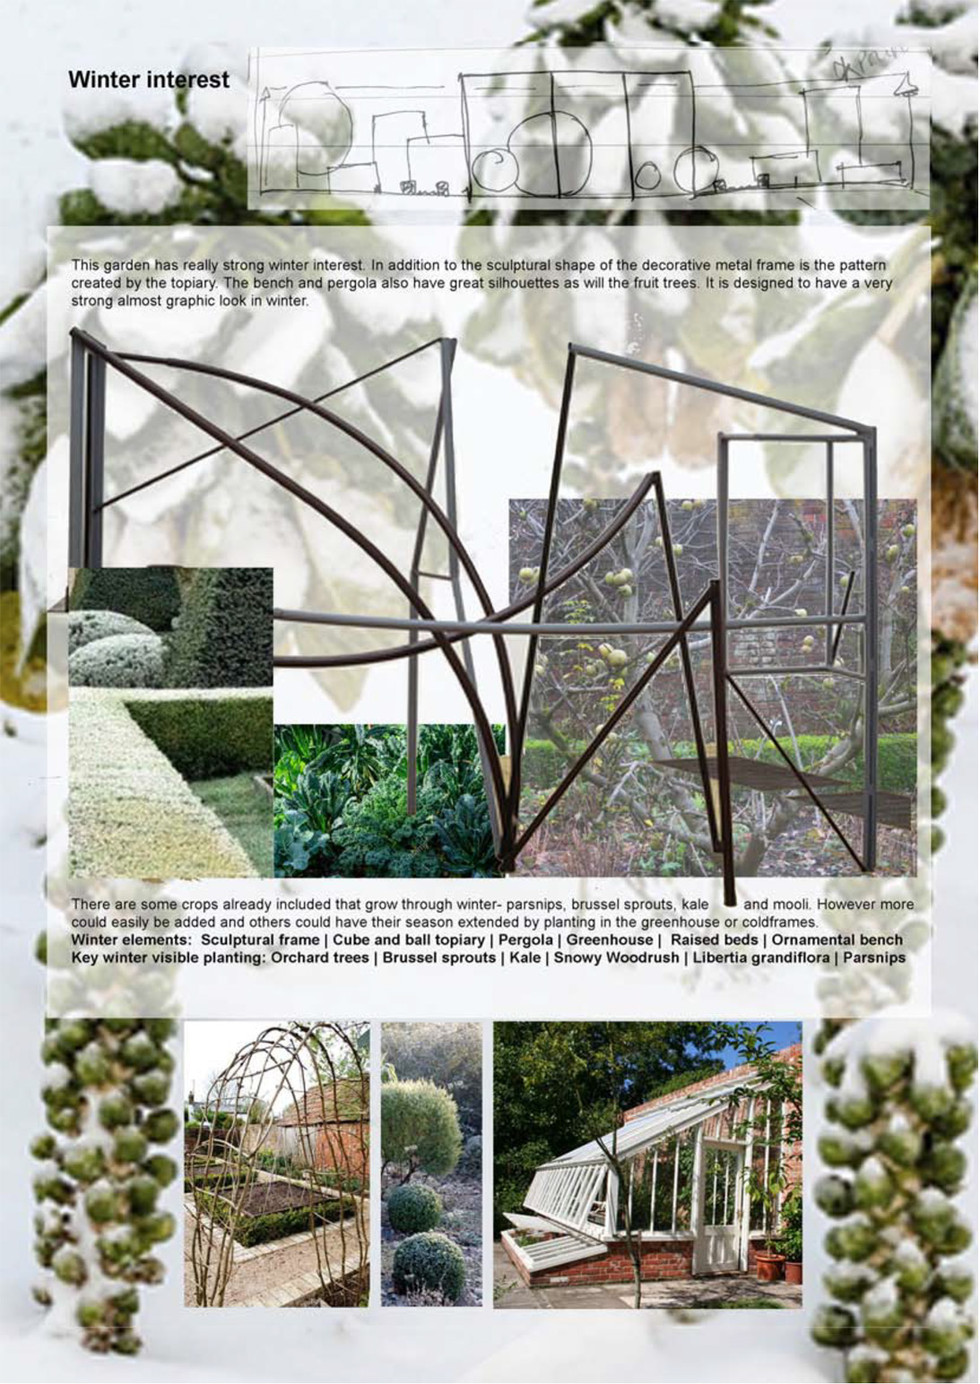 Walled produce garden winter structure R